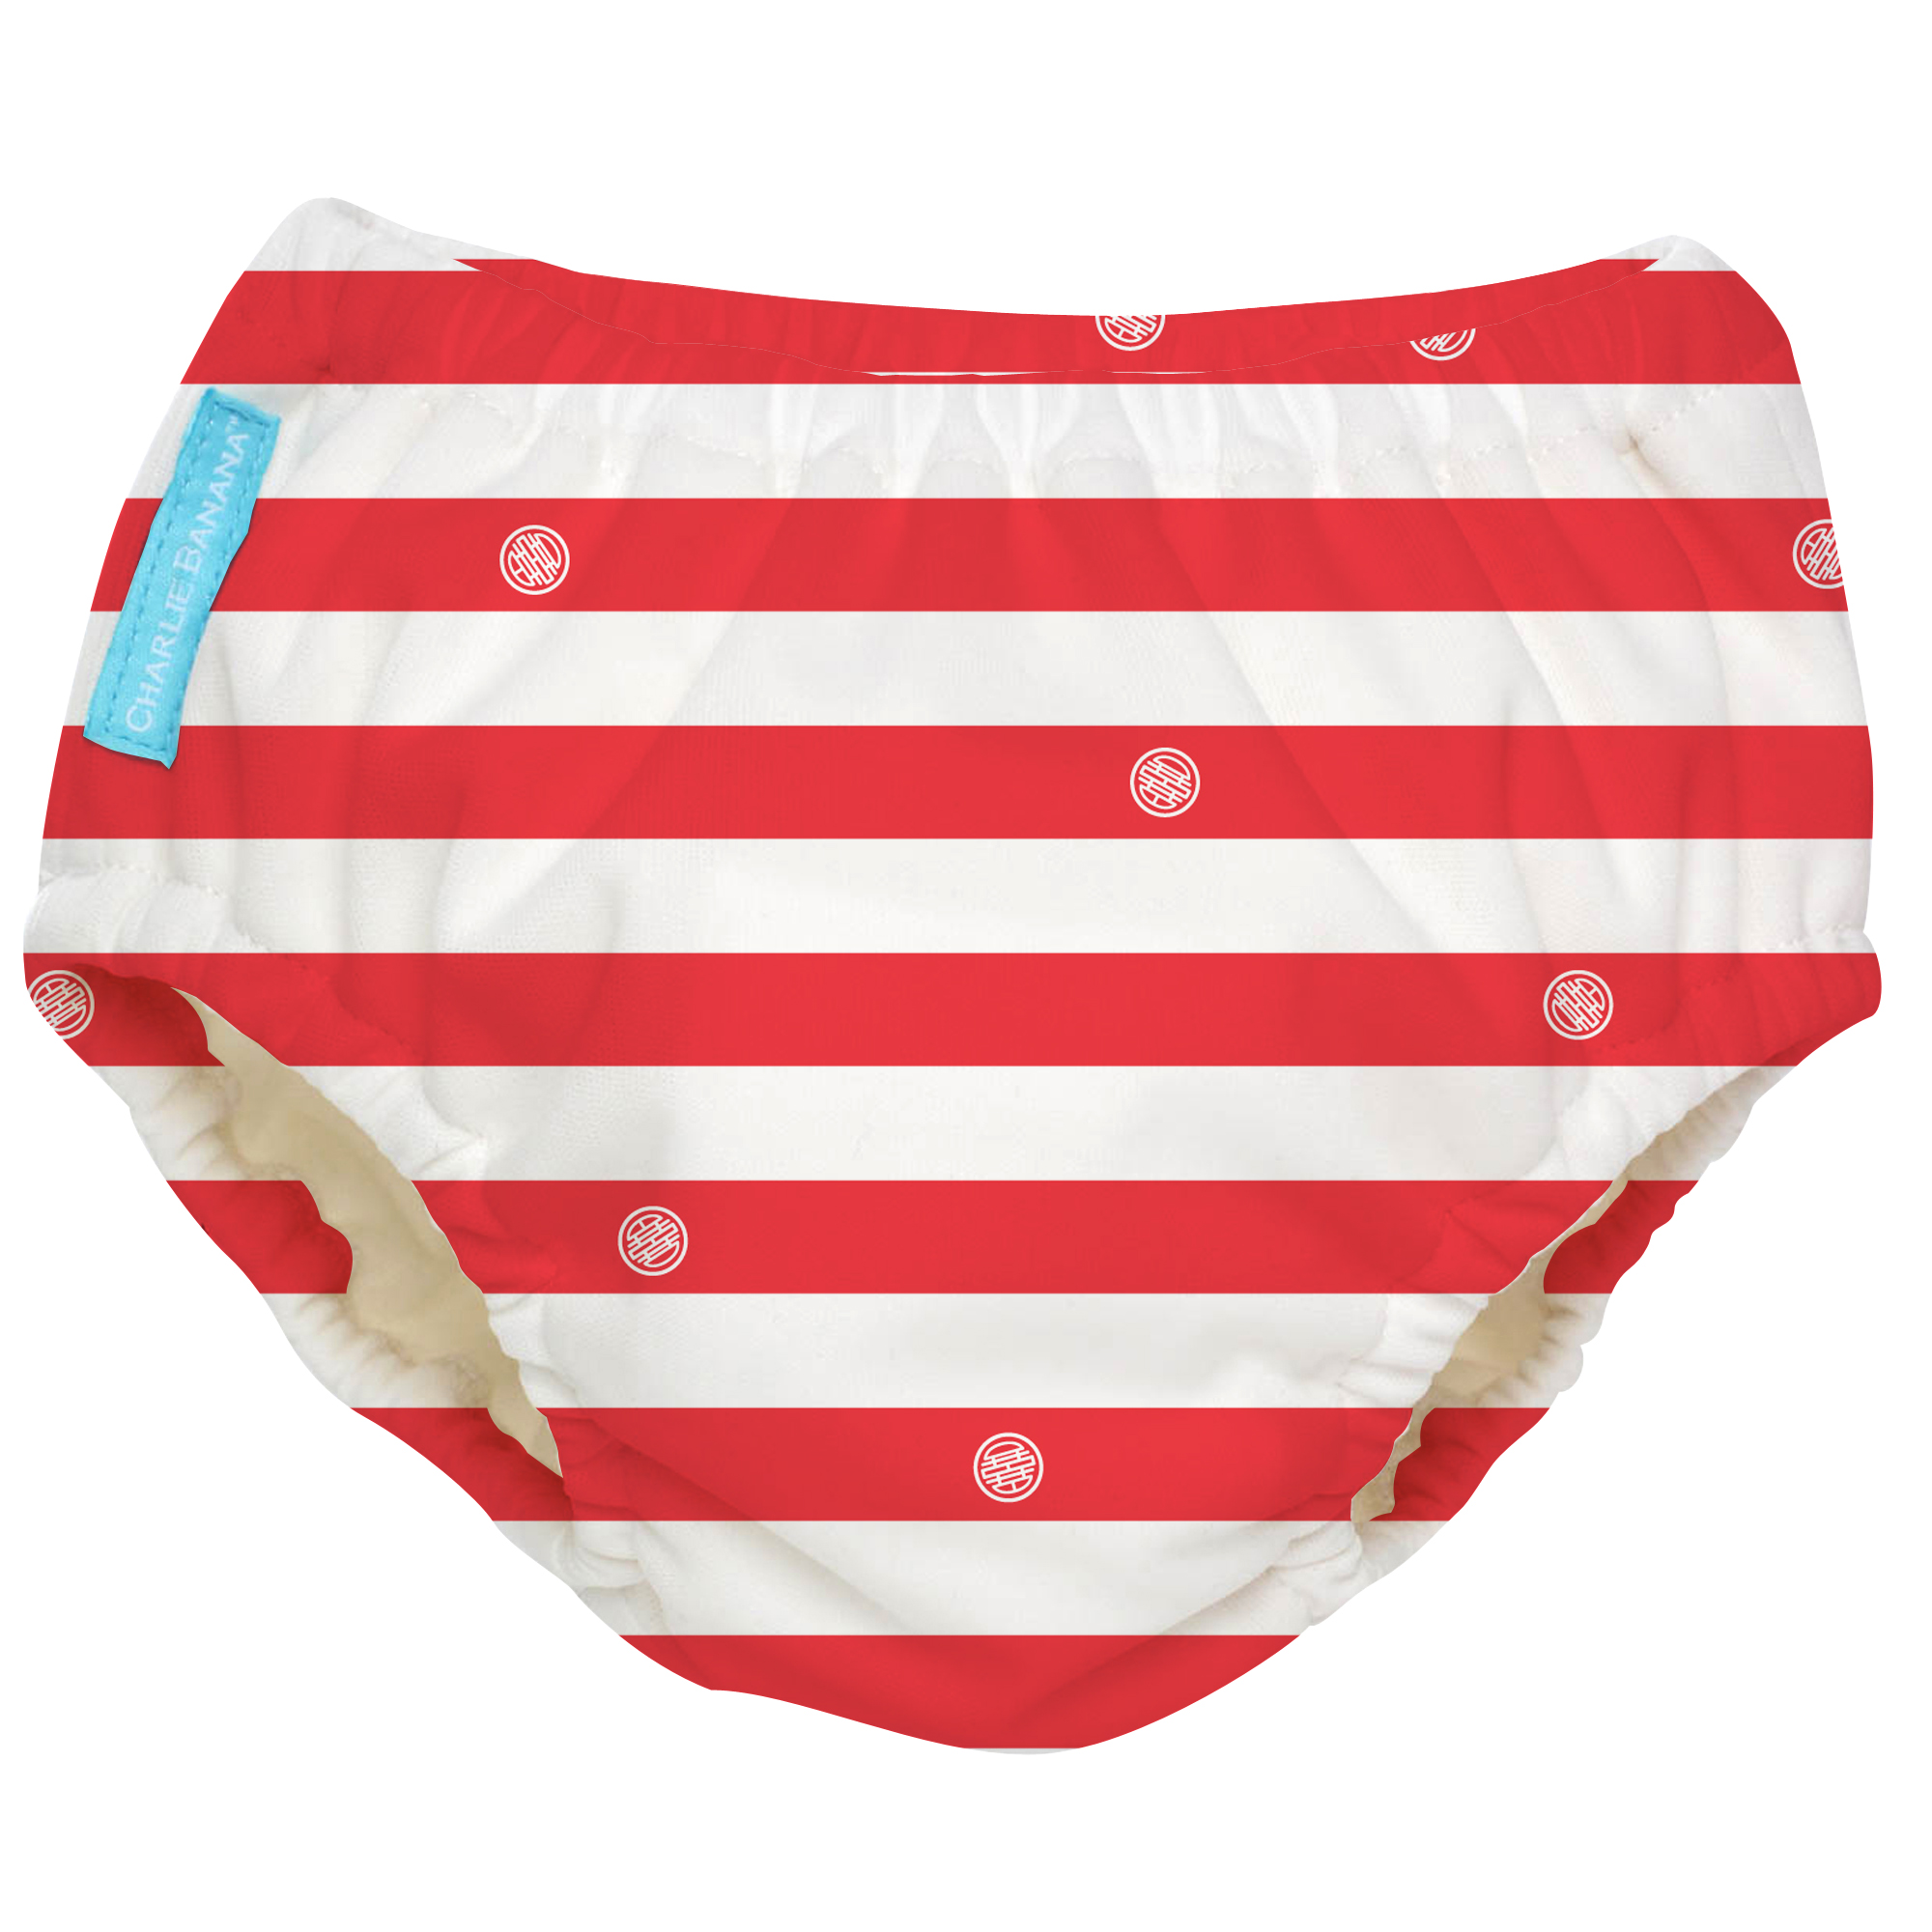 Charlie Banana Reusable Swim Diaper, Red Stripes, Size Small